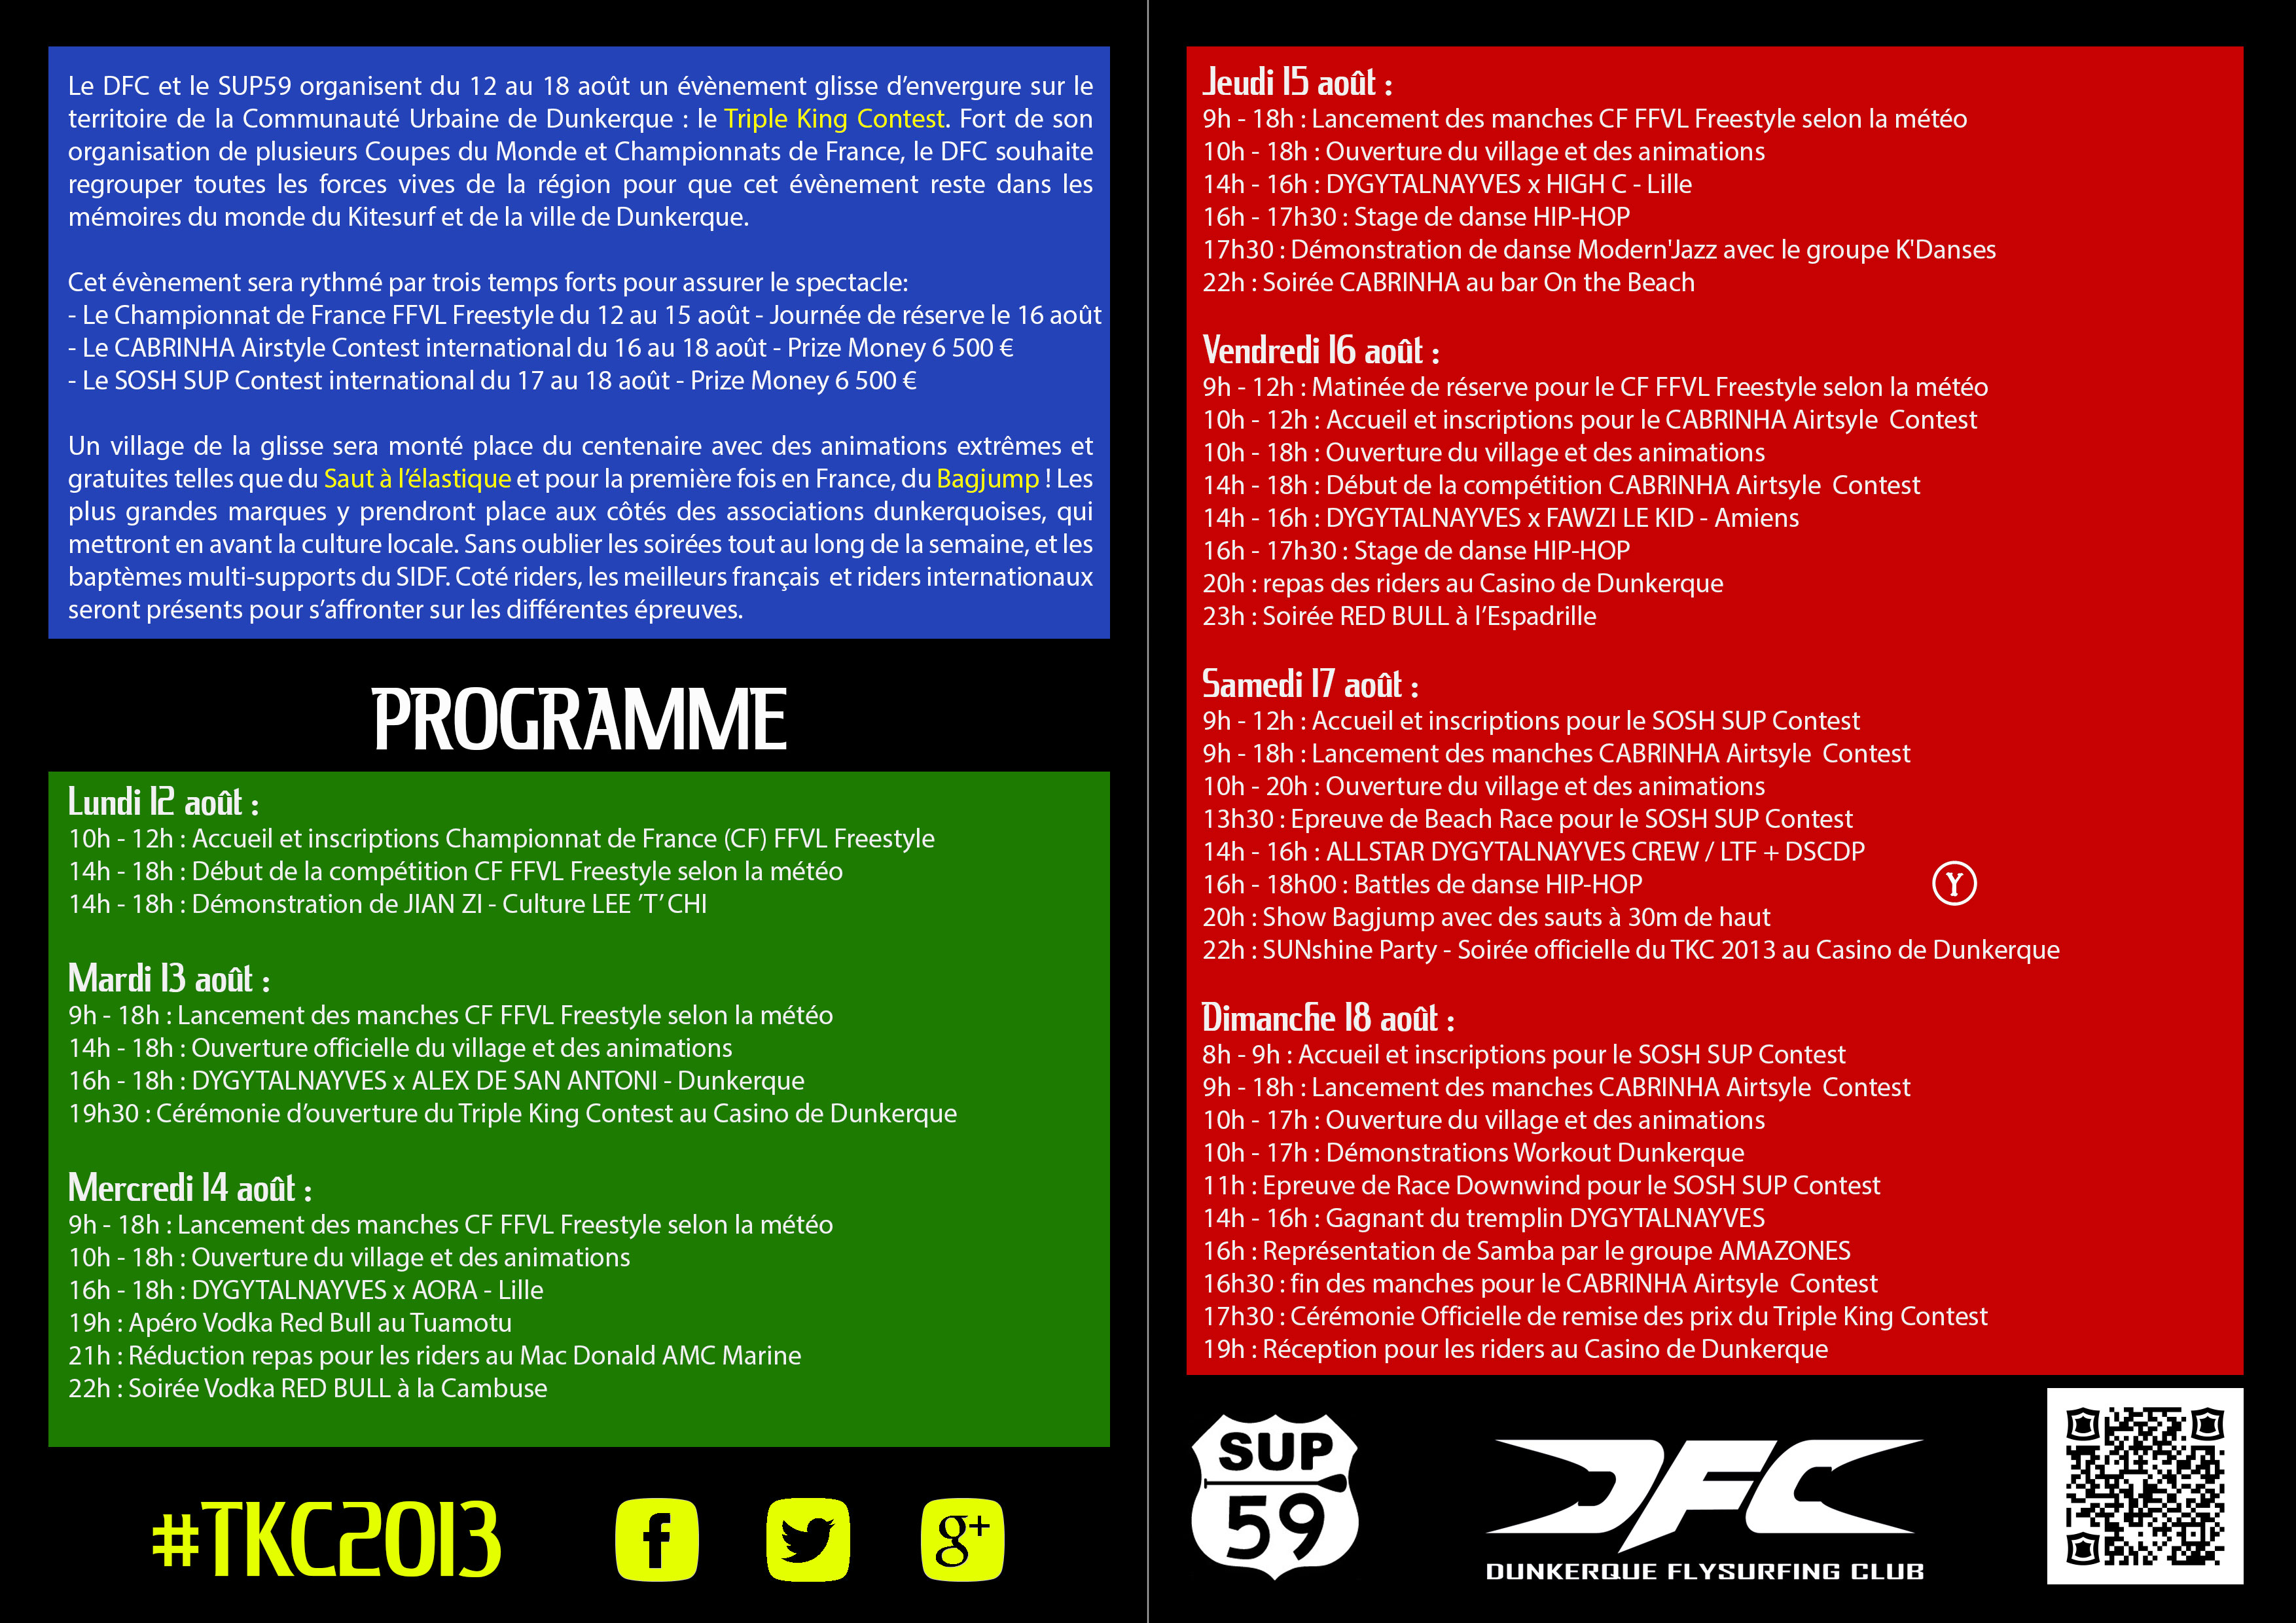 Programme du Triple King Contest